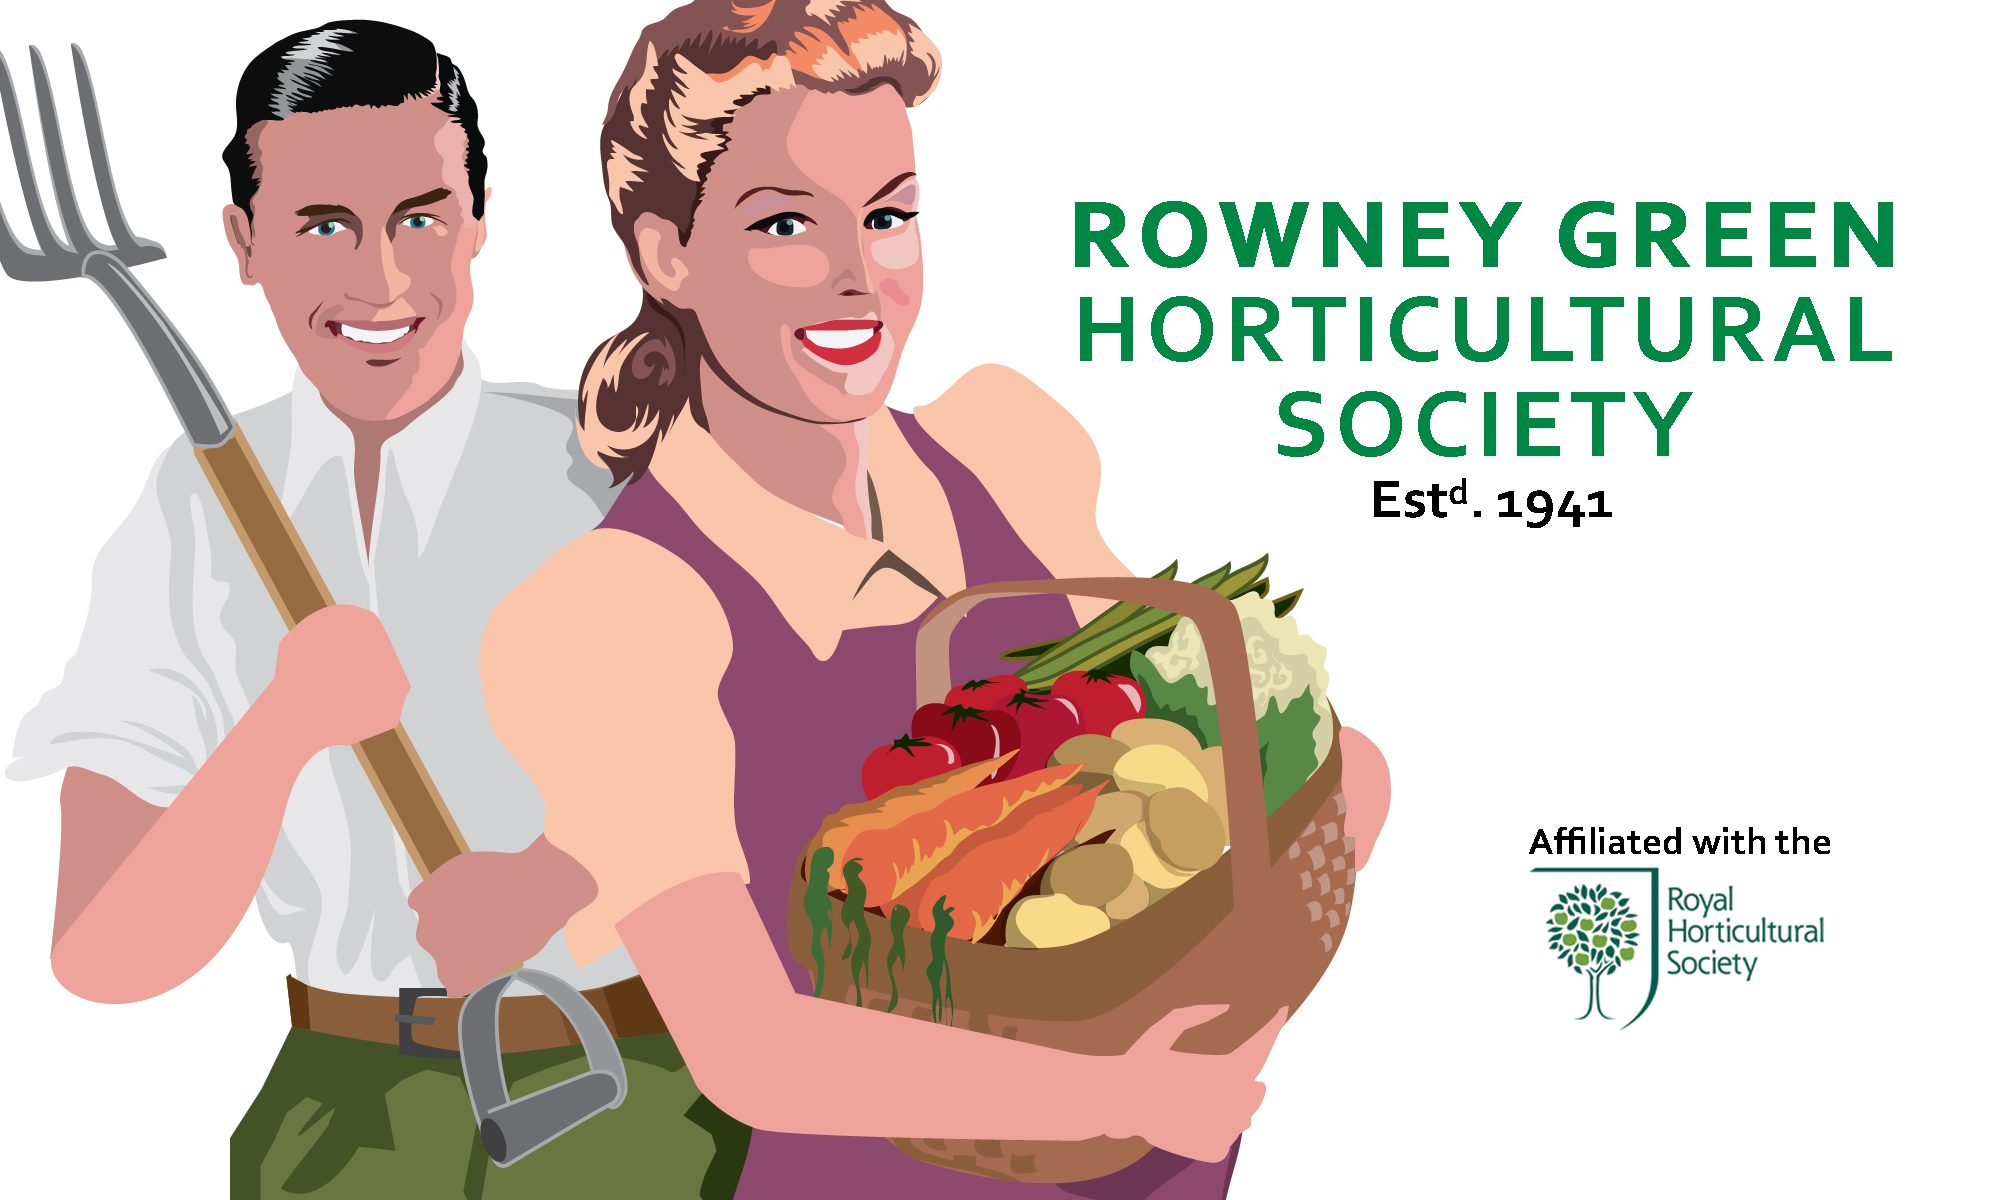 Rowney Green Horticultural Society